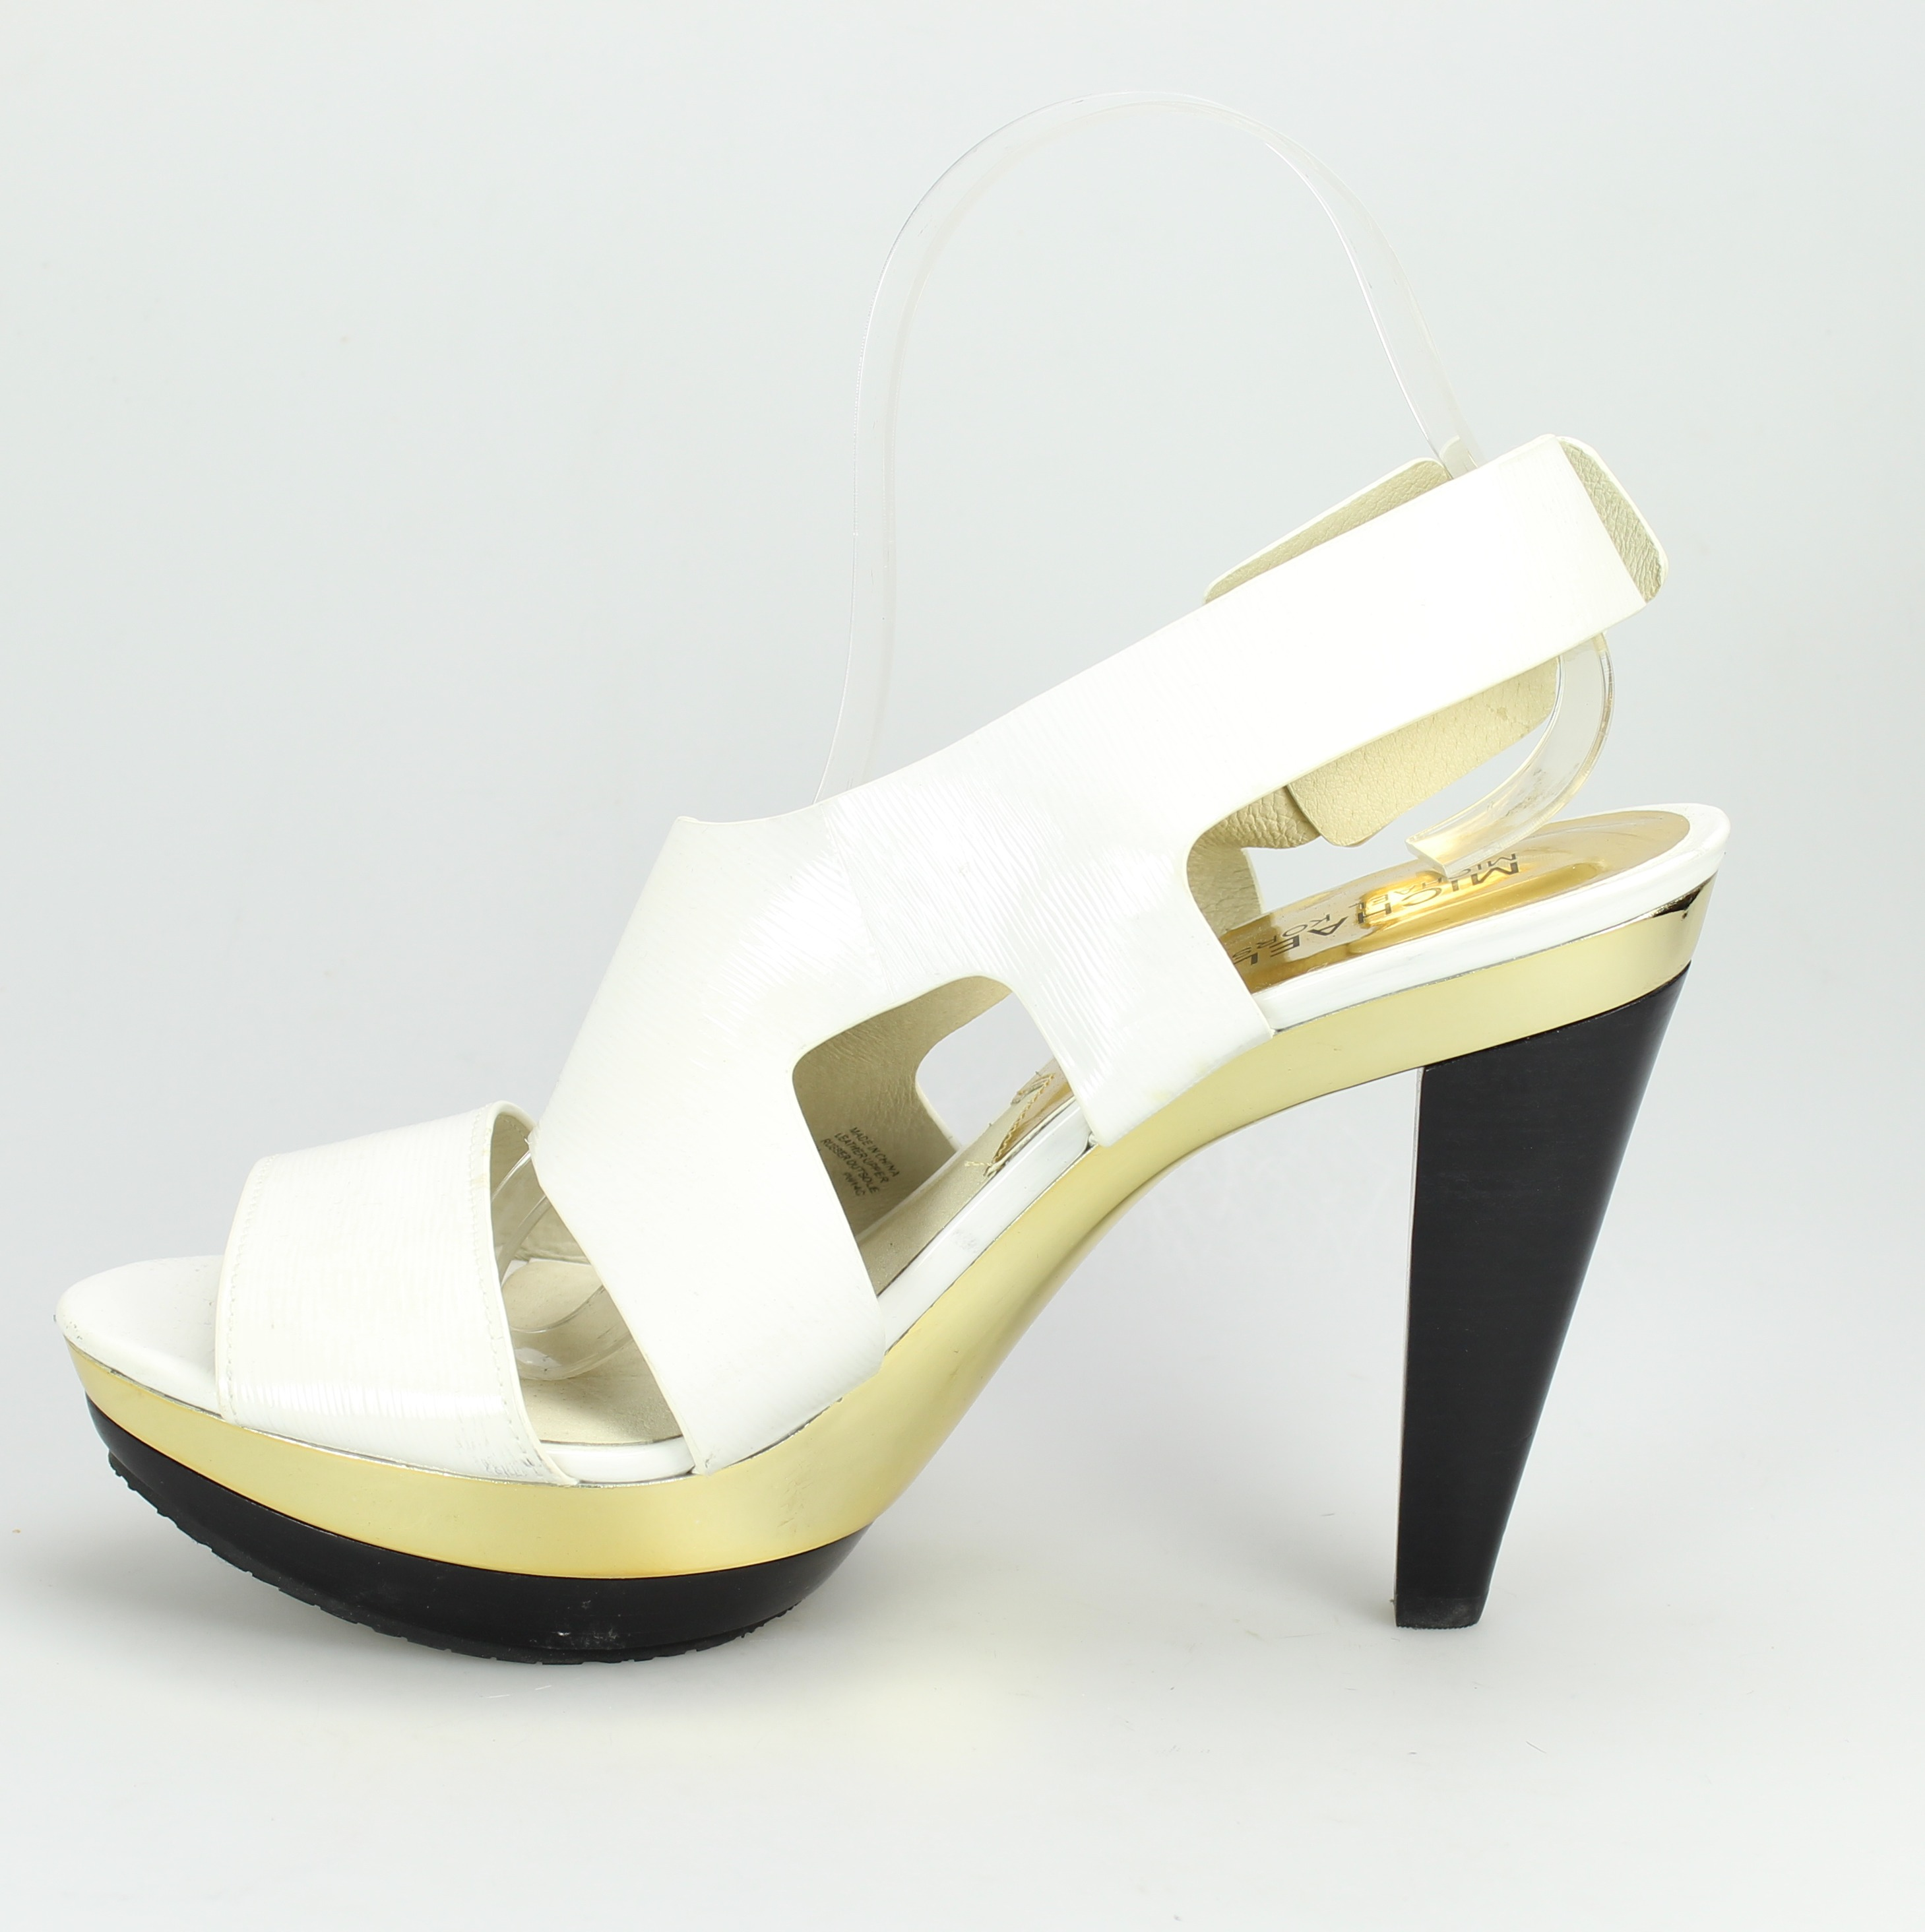 michael kors new carla white shoes 9m open toe patent leather